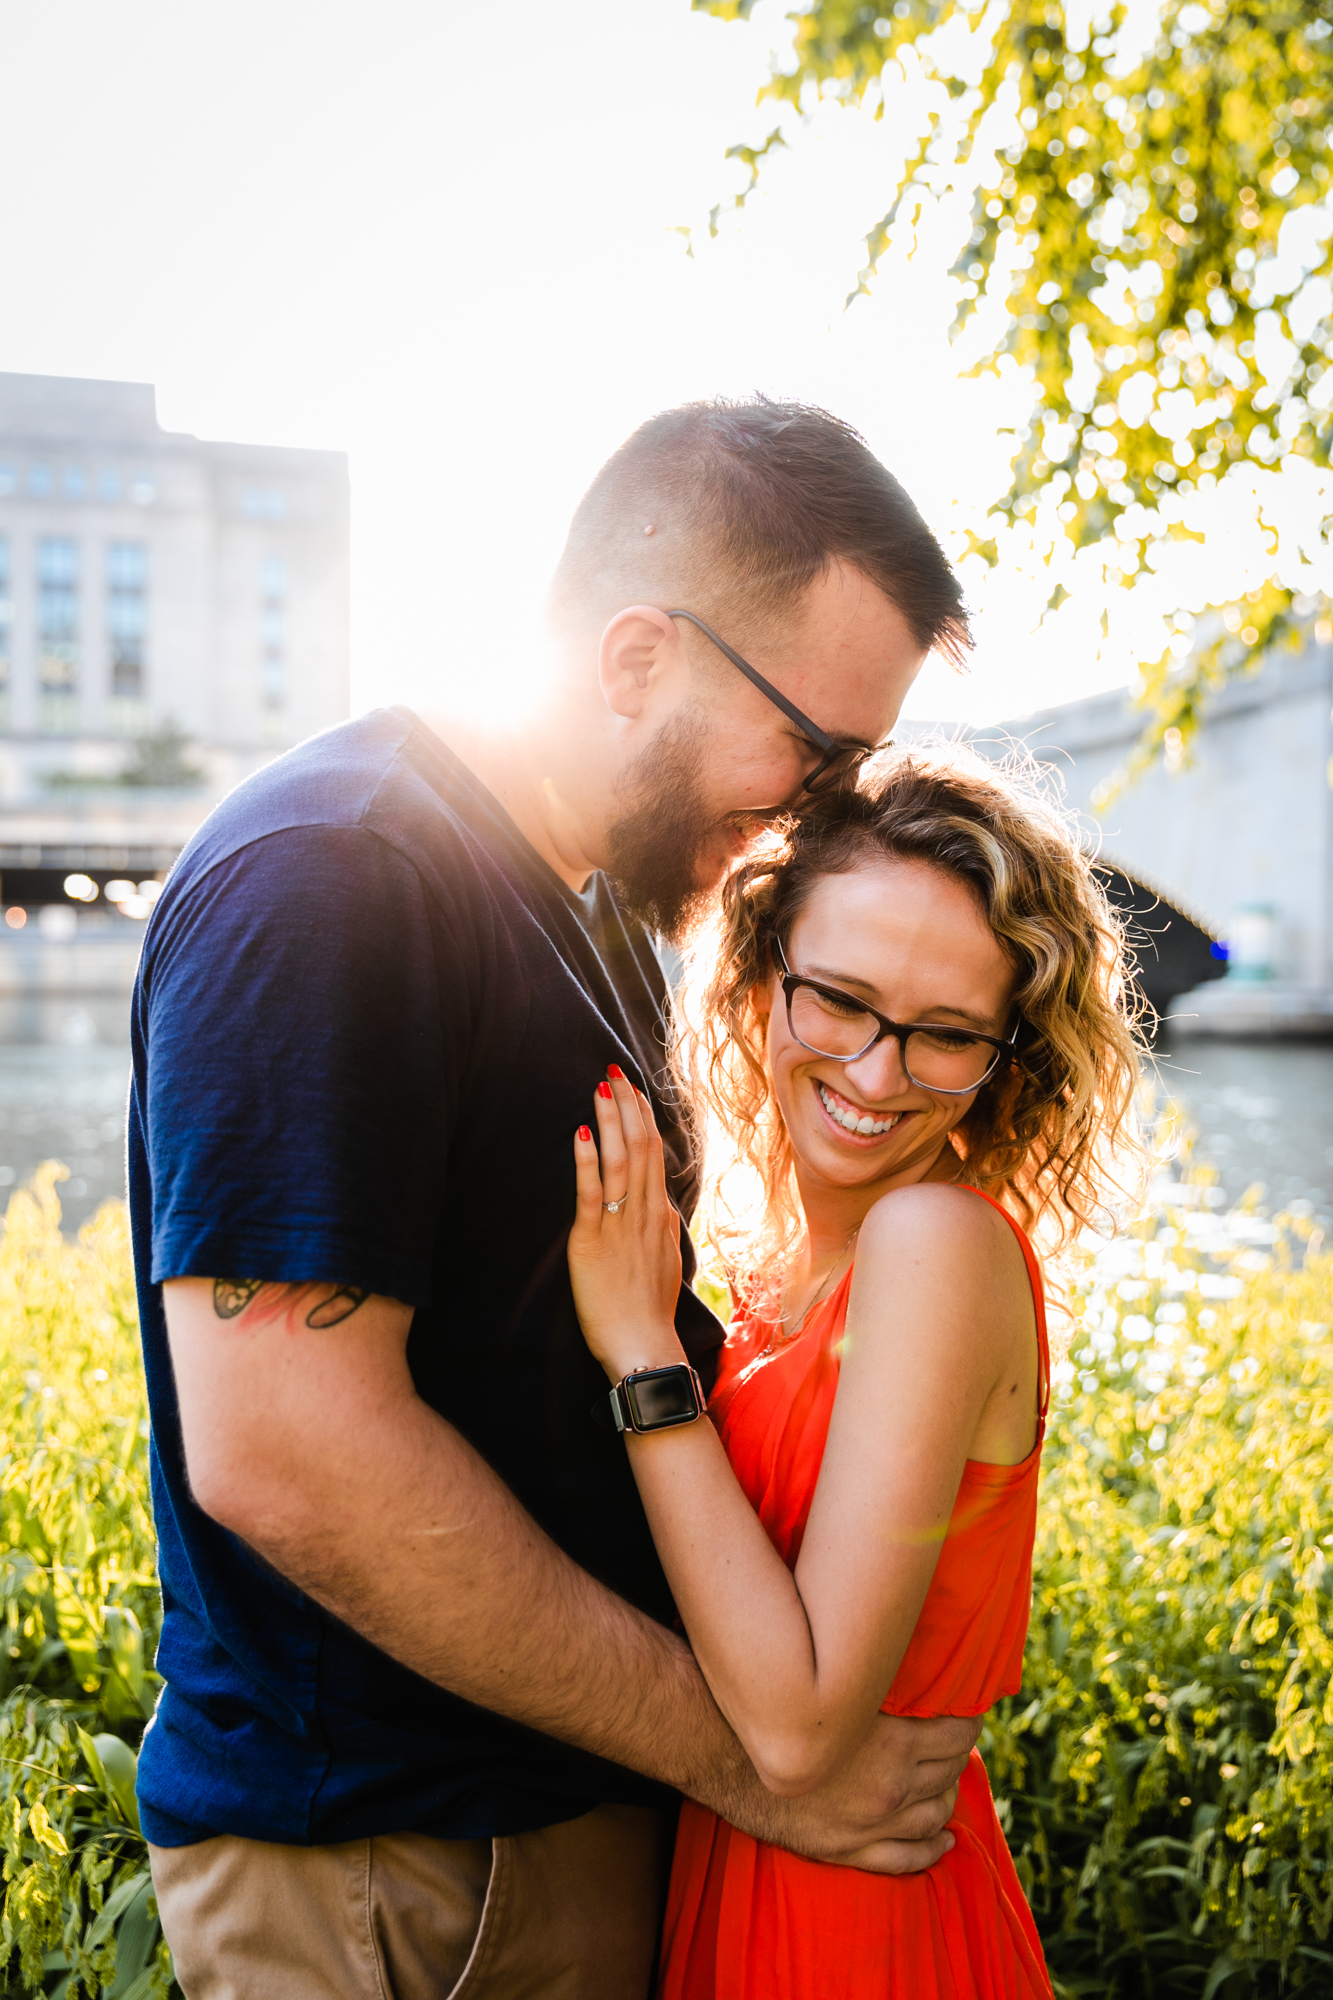 Engagament Photography Philadelphia - LoveStruck Pictures - Schuylkill River Trail-010.jpg